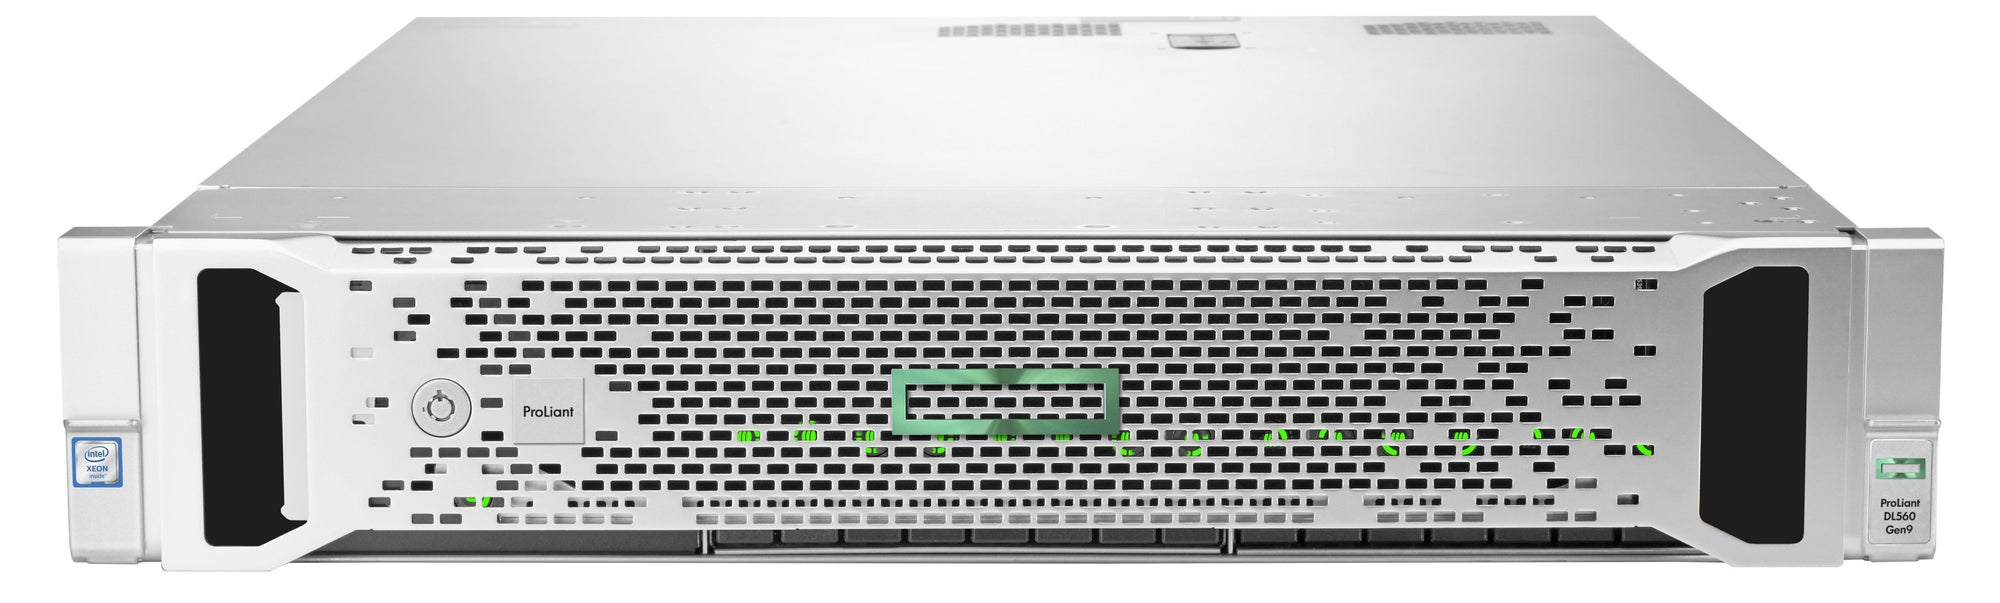 HPE ProLiant DL560 Gen9 CTO Rack Server